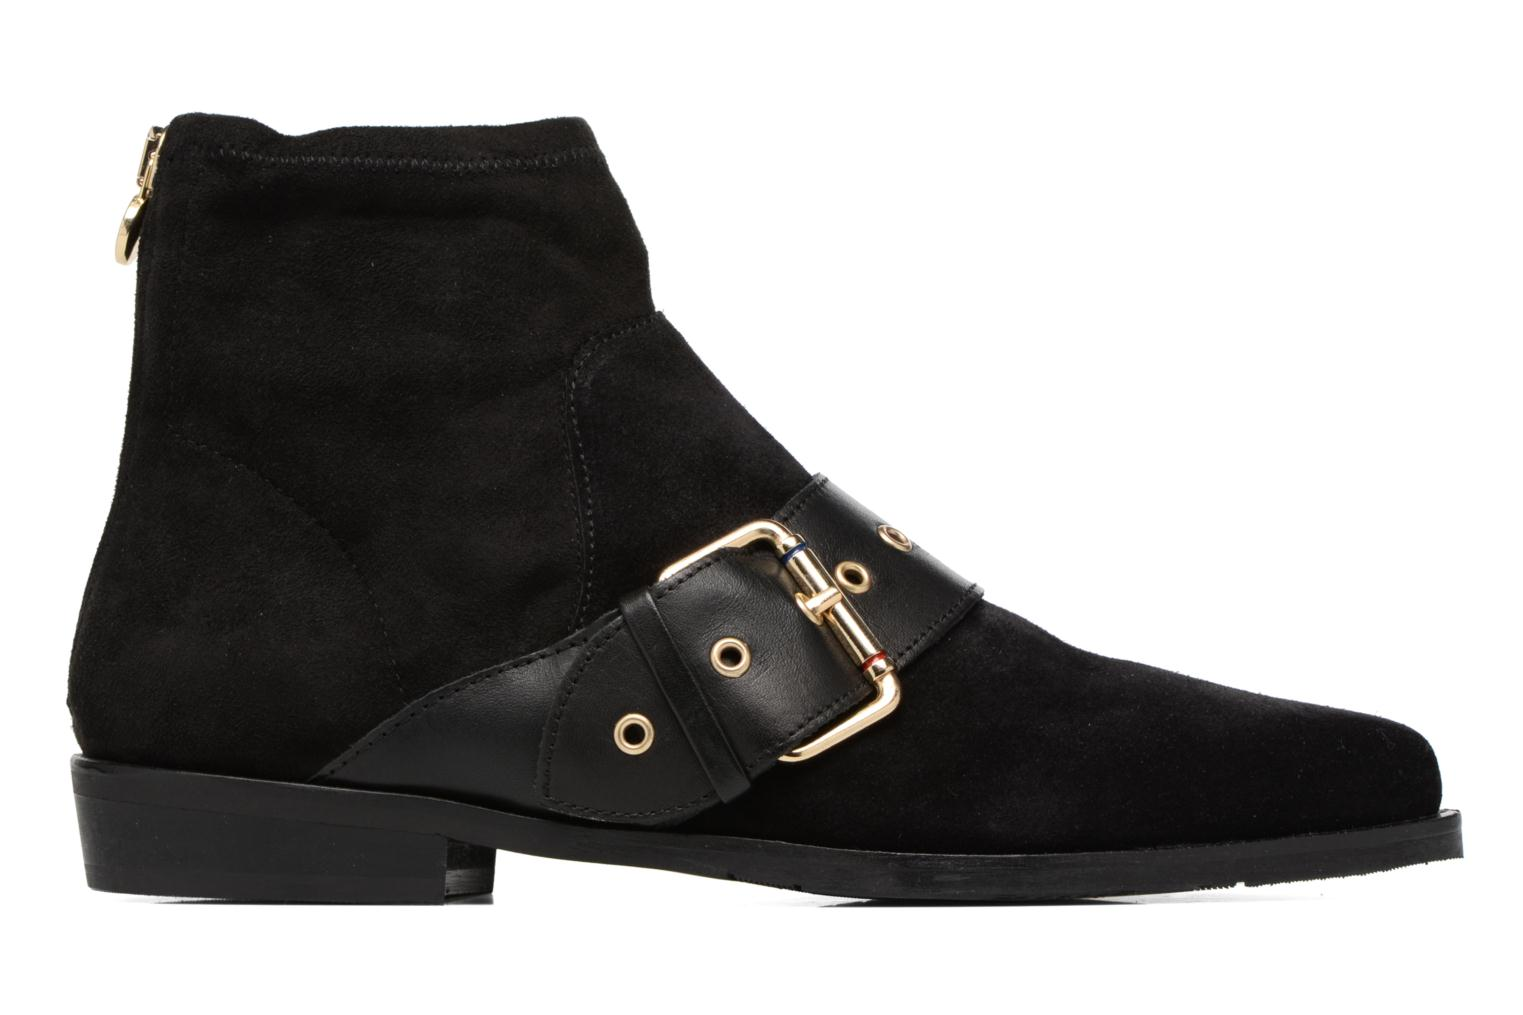 Gigi Hadid Flat Boot Black